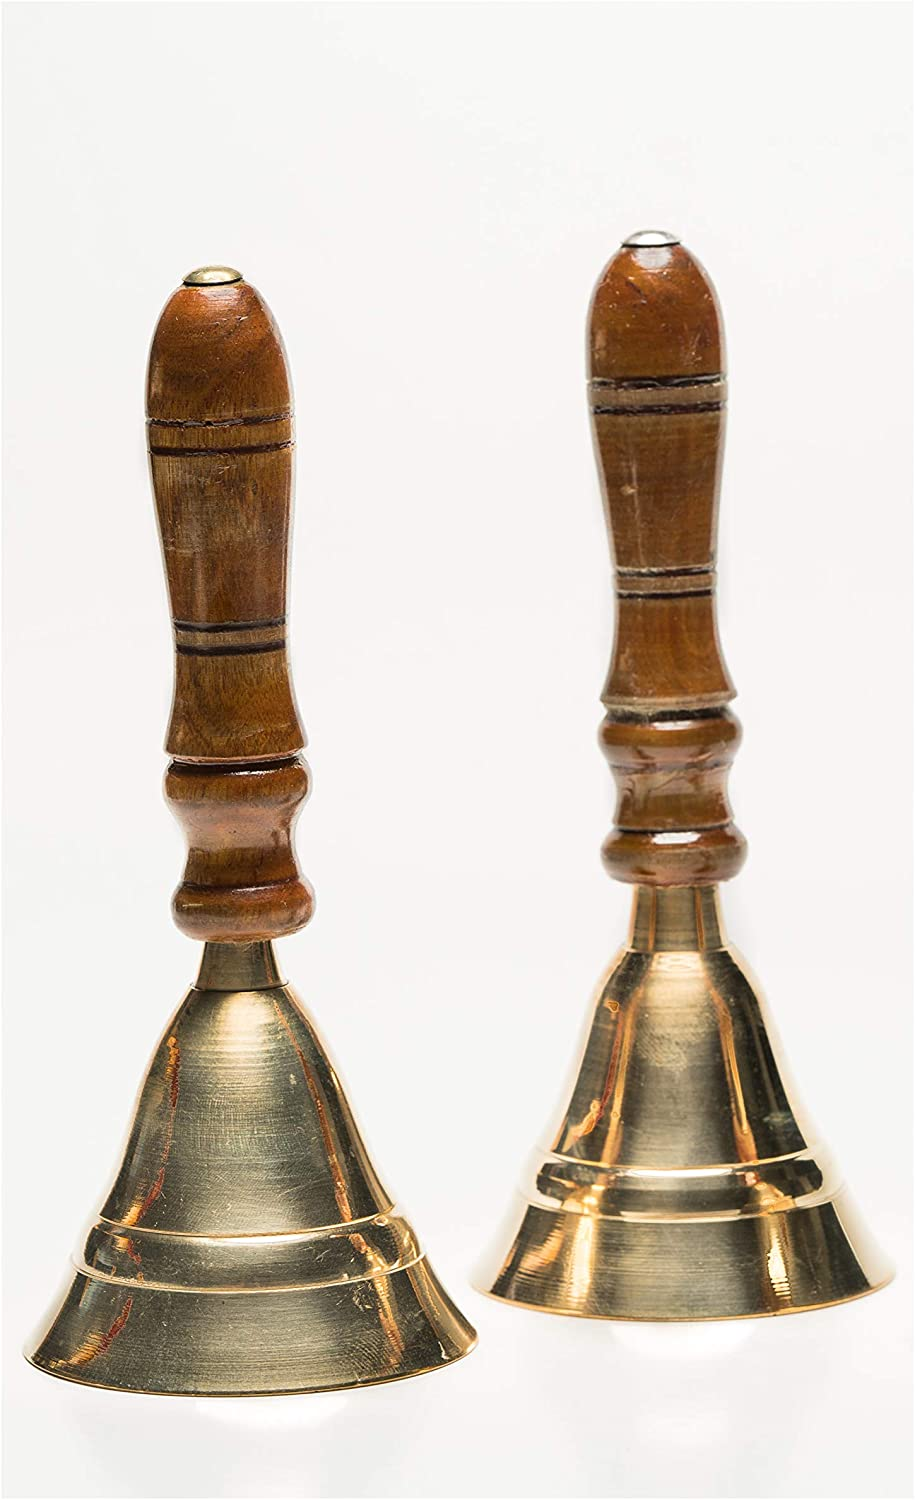 Two Hand Held Service School Butler Dinner Call Bells ~ Polished Brass With Wooden Handle